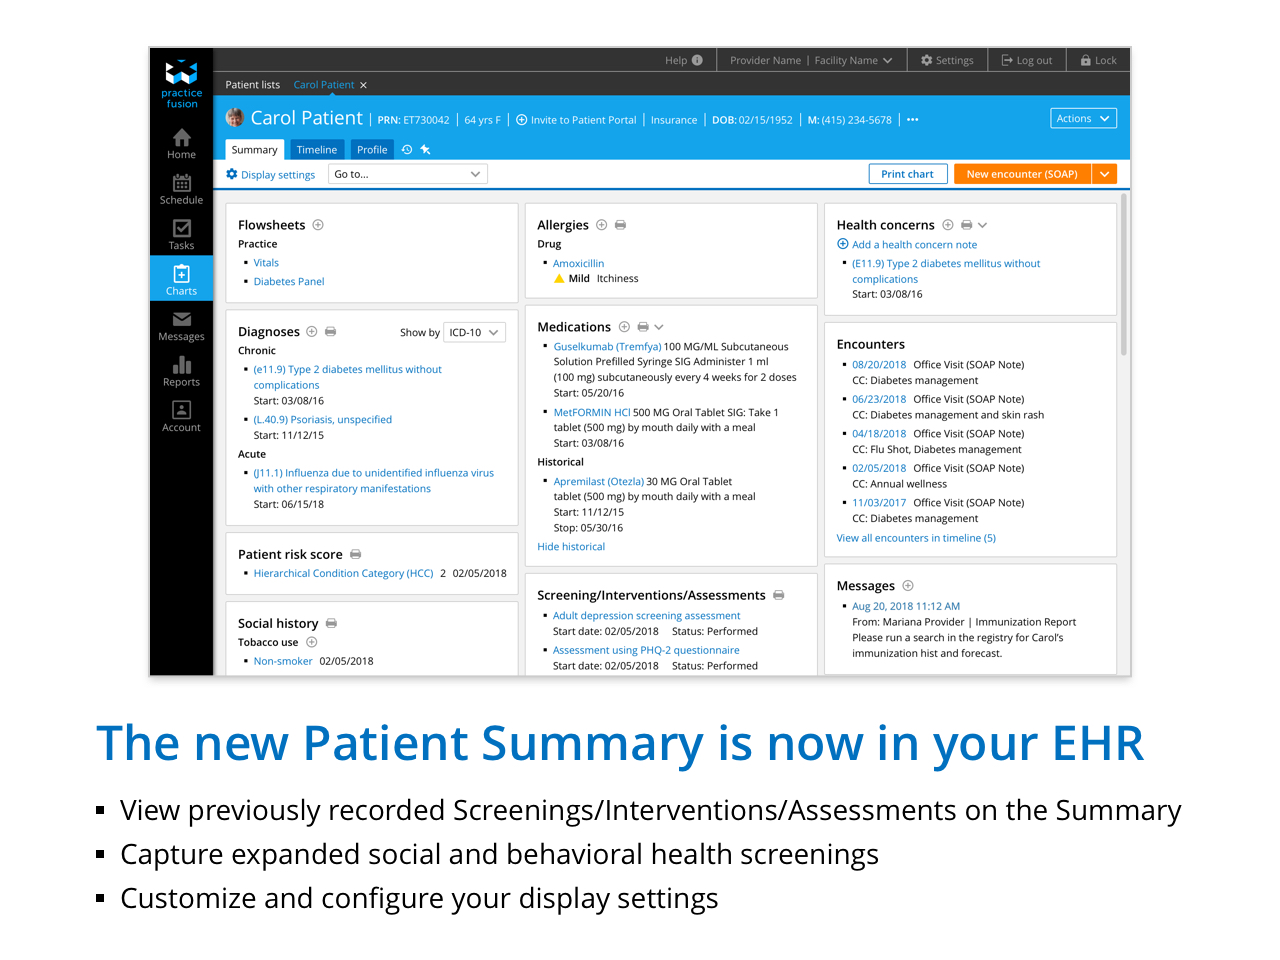 View previously recorded Screening/Interventions/Assessments on the Summary - Capture expanded social and behavioral health screenings - Customize and configure your display settings